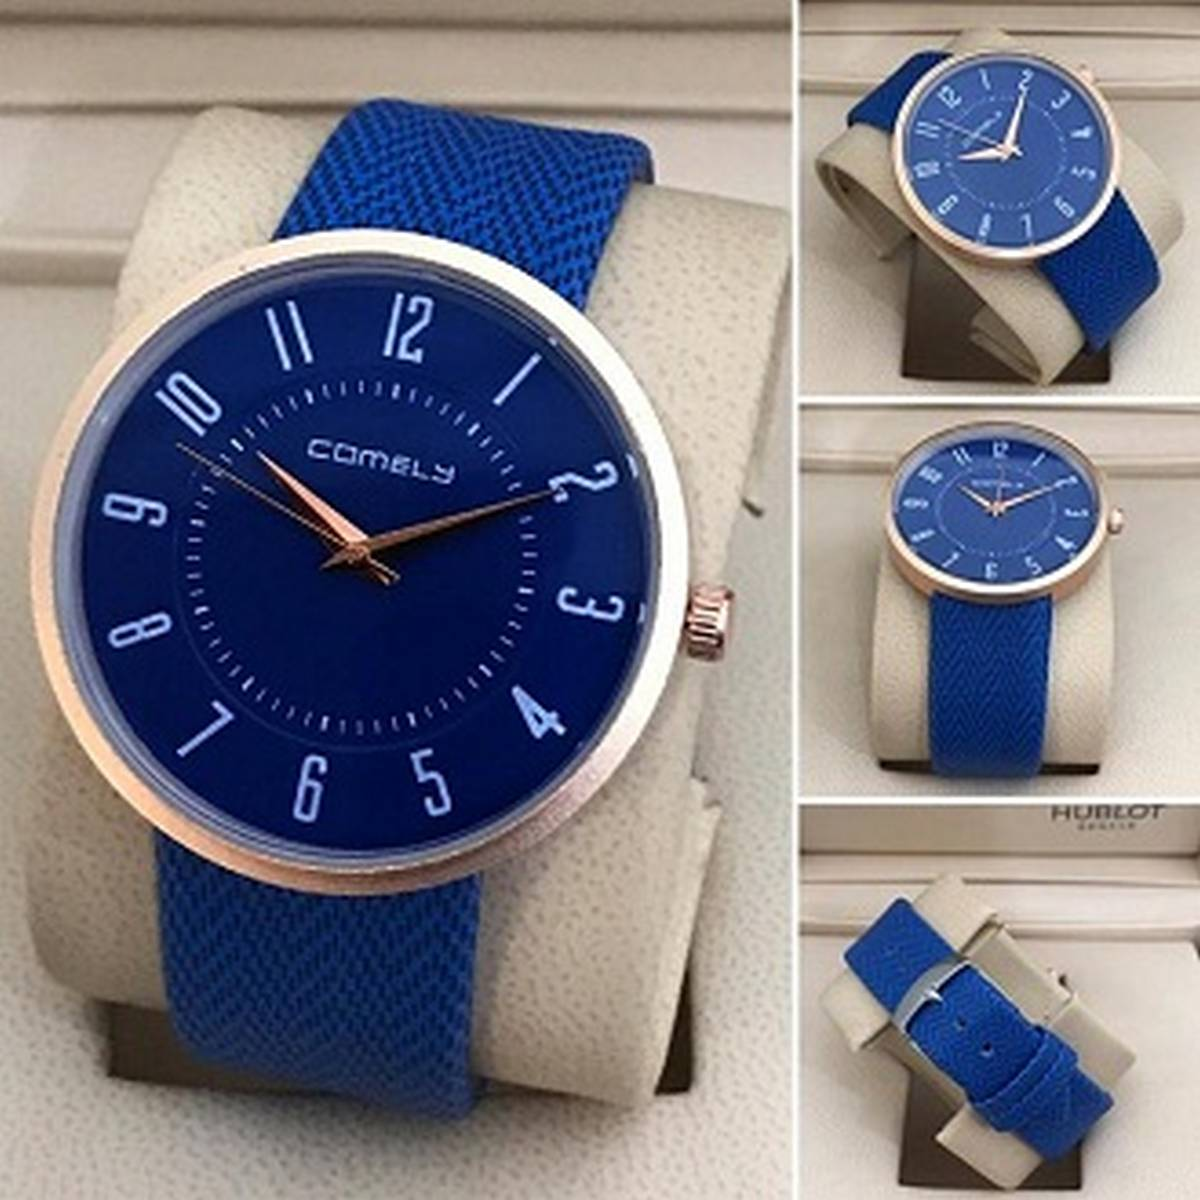 Comely Gents Round Dial Leather Strap Casual Watch for Man SMART Quartz Watches for Boys & Men New Fashion Wrist watch for Casual And Party Wear and Gifts WH006